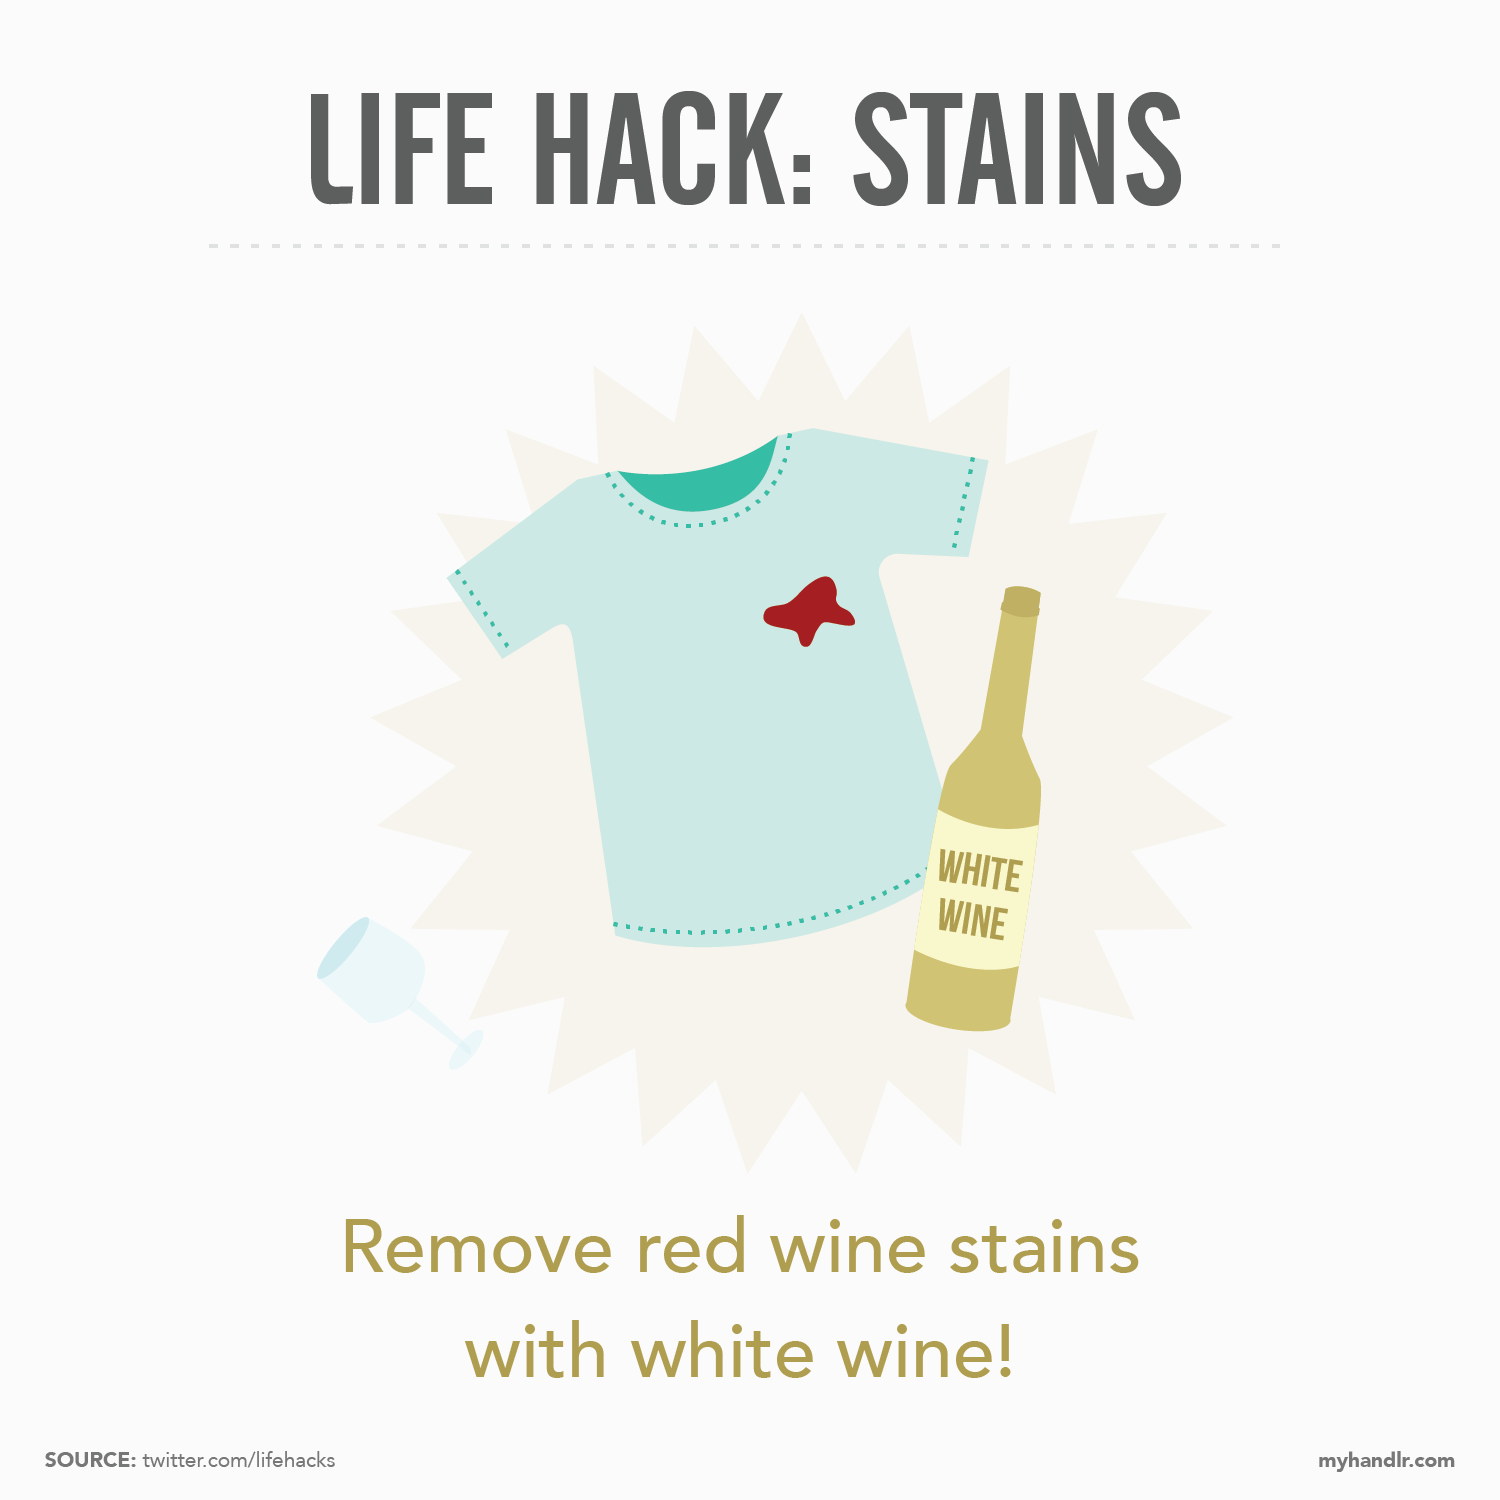 Handlr Life Hack: Stains